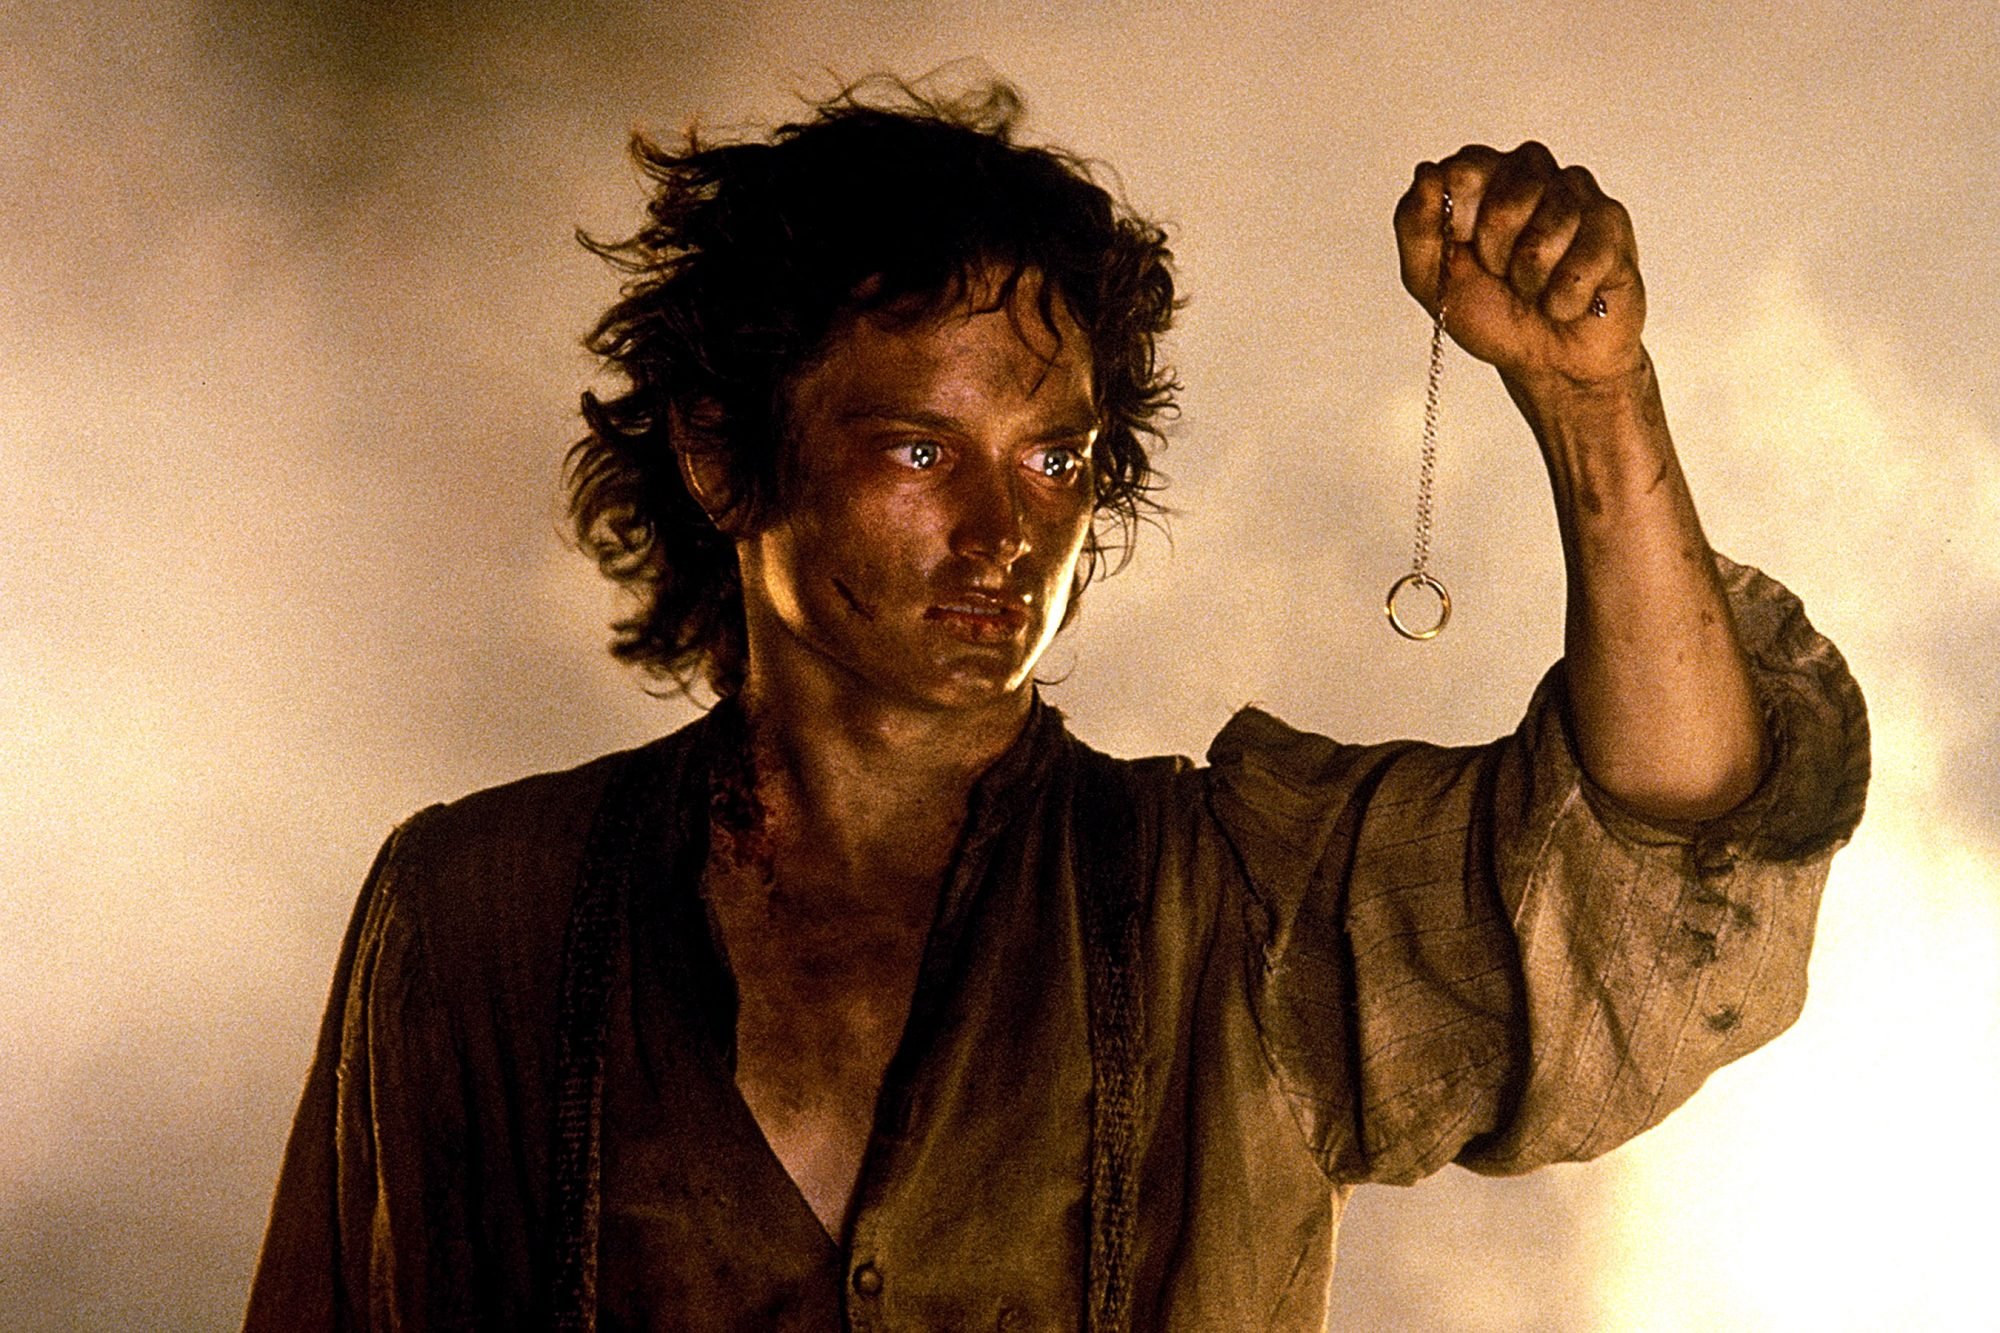 THE LORD OF THE RINGS: THE RETURN OF THE KING, Elijah Wood, 2003, (c) New Line/courtesy Everett Coll